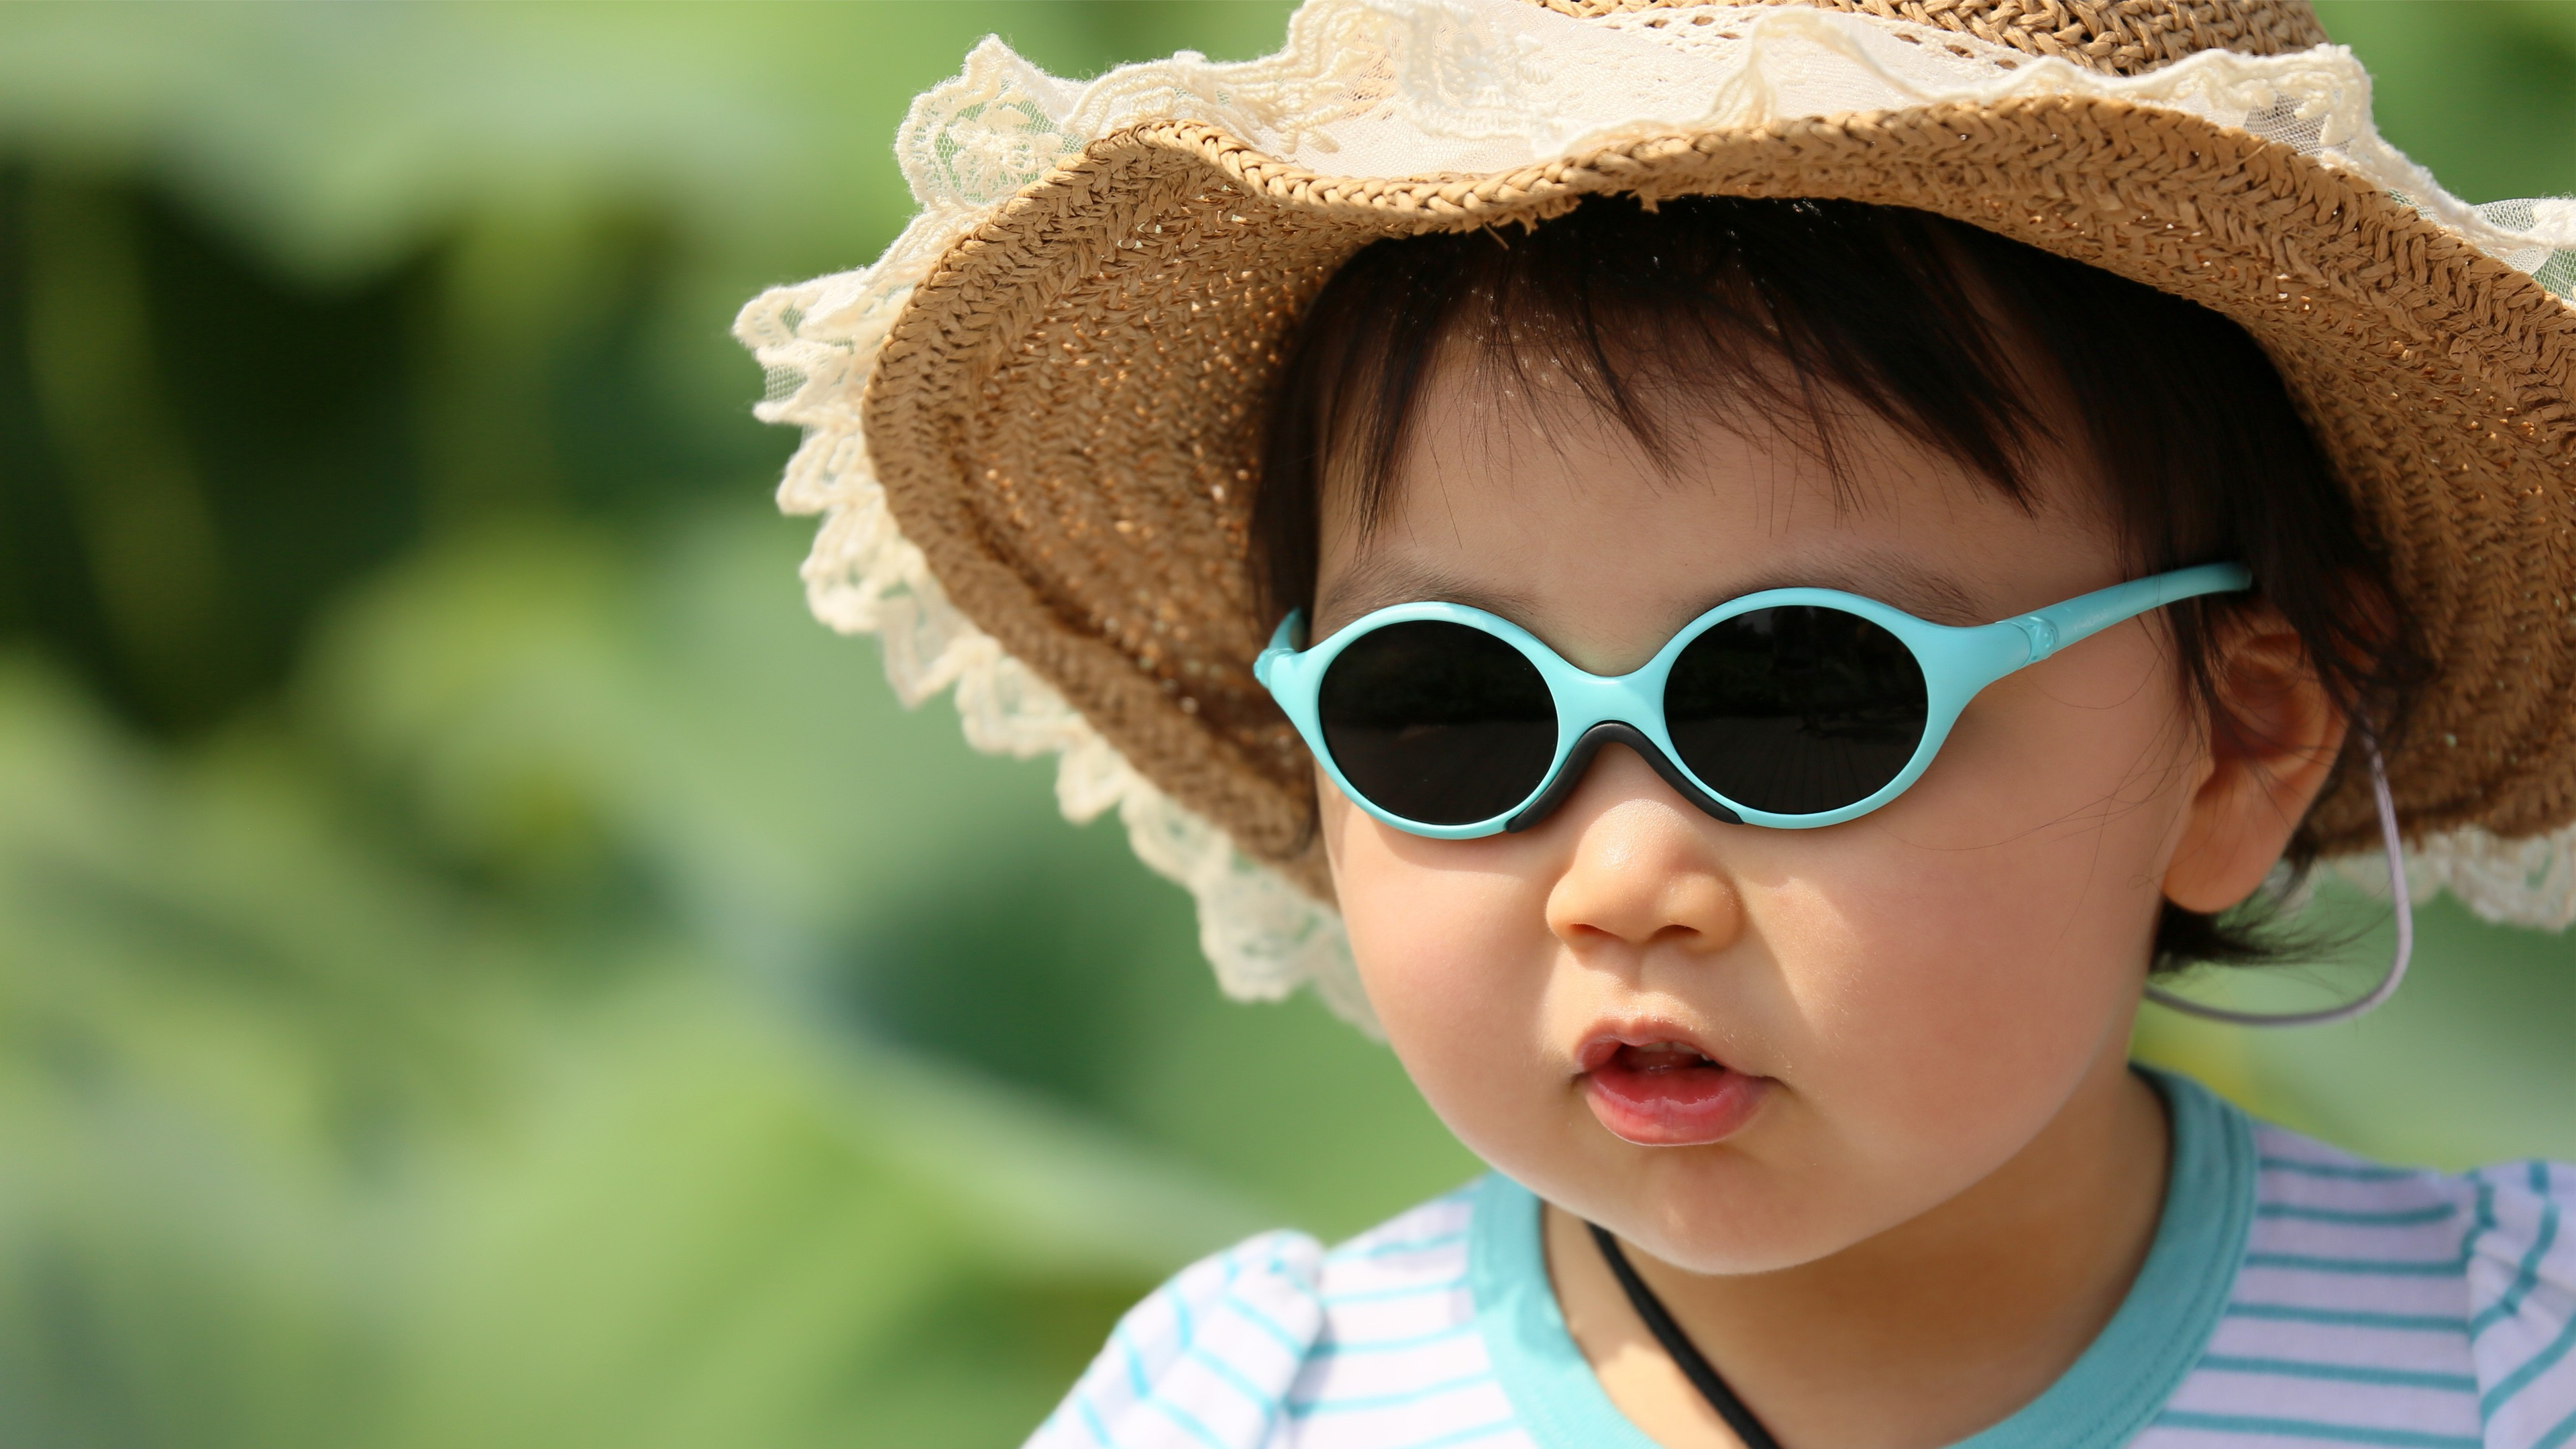 Cute Asian Baby, HD Cute, 4k Wallpapers, Images ...